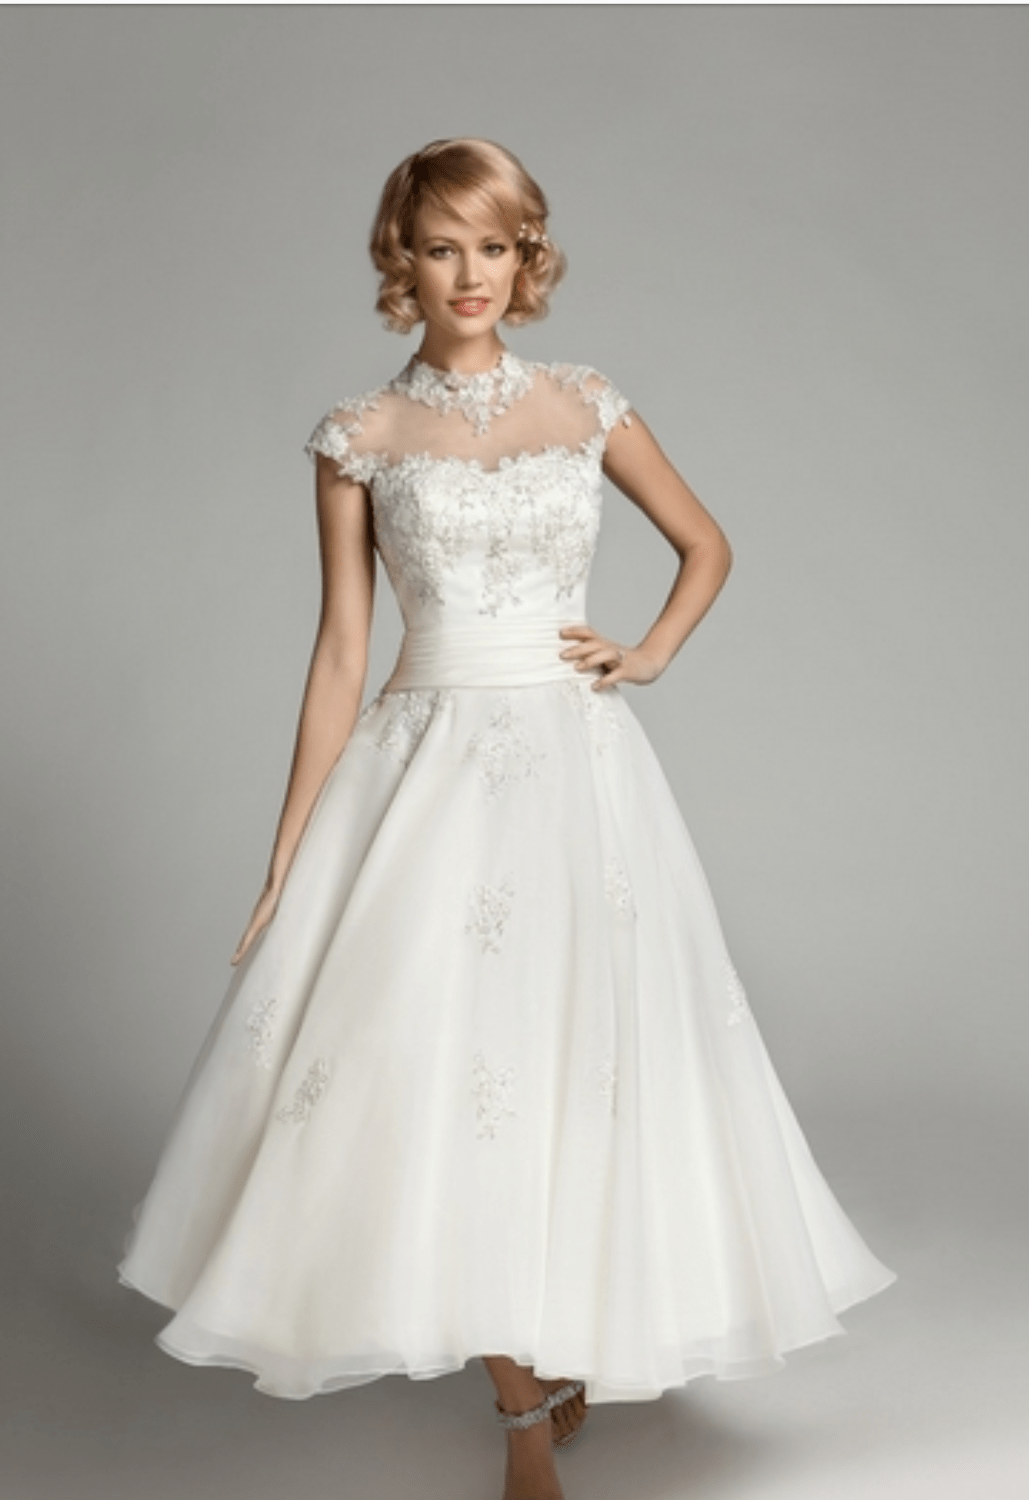 Stunning ballet length mark lesley dress sell my wedding for Sell wedding dress online